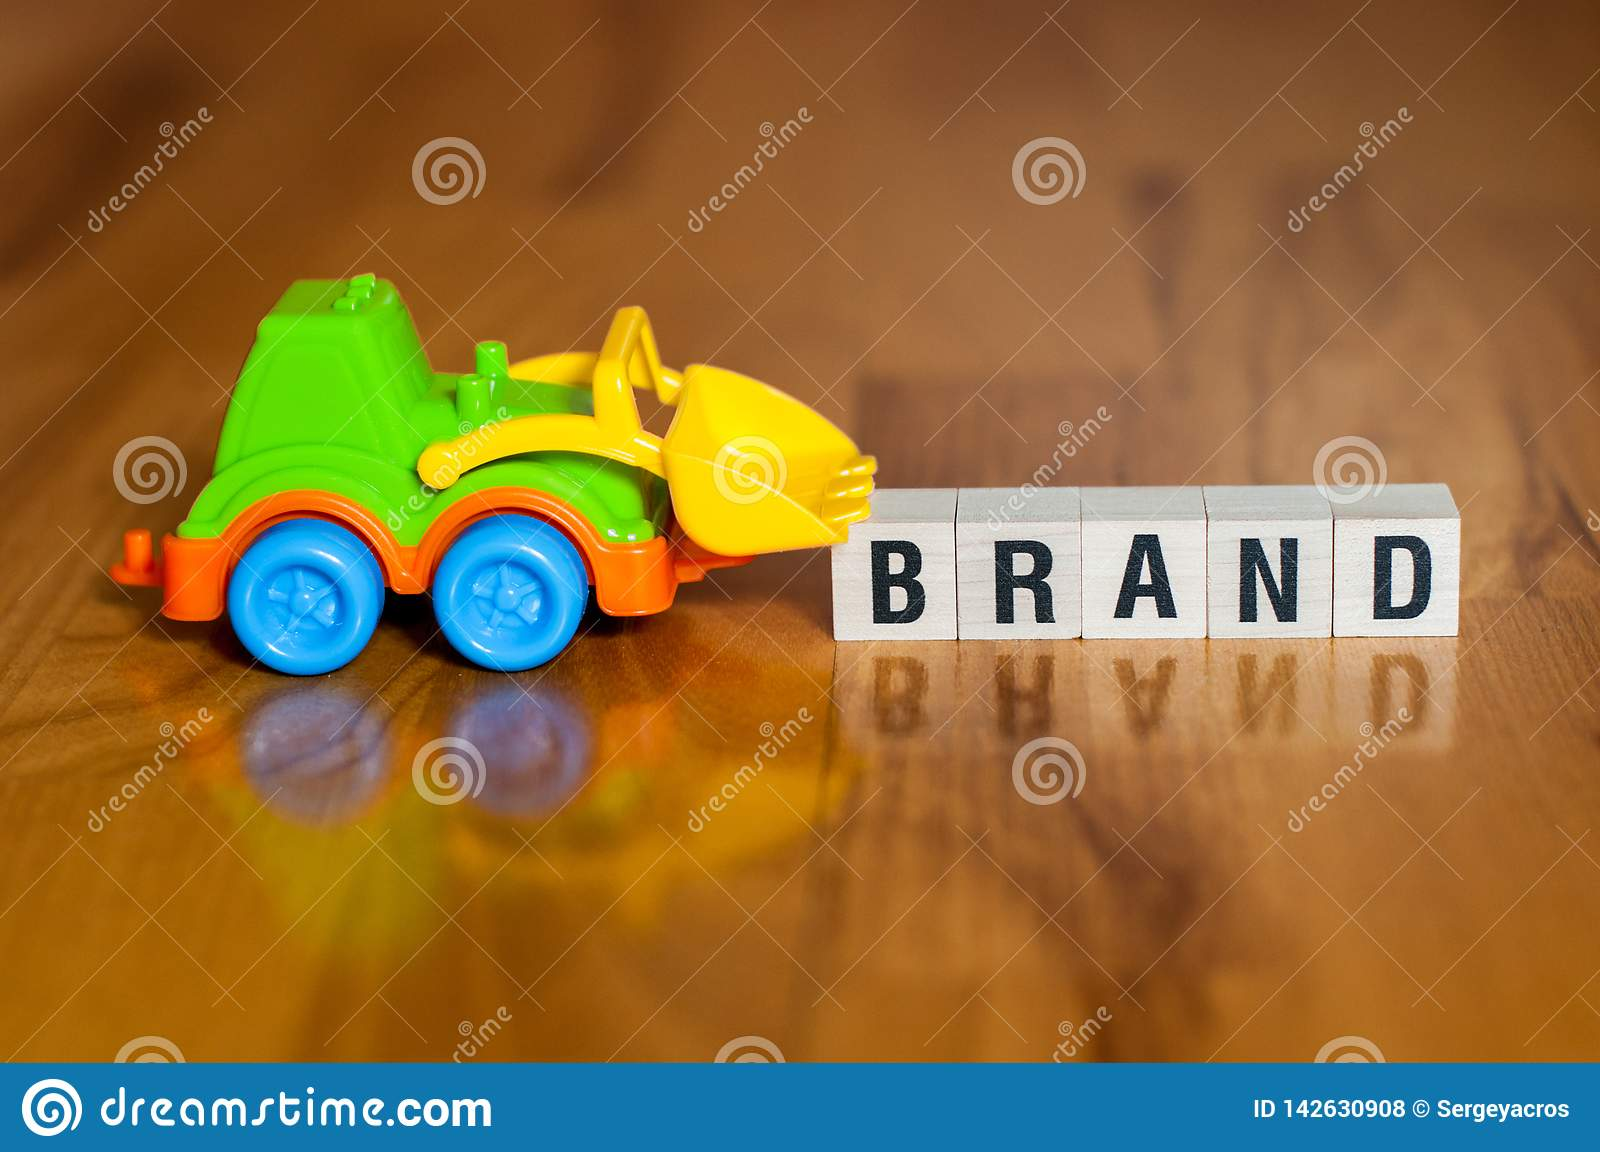 Brand word concept